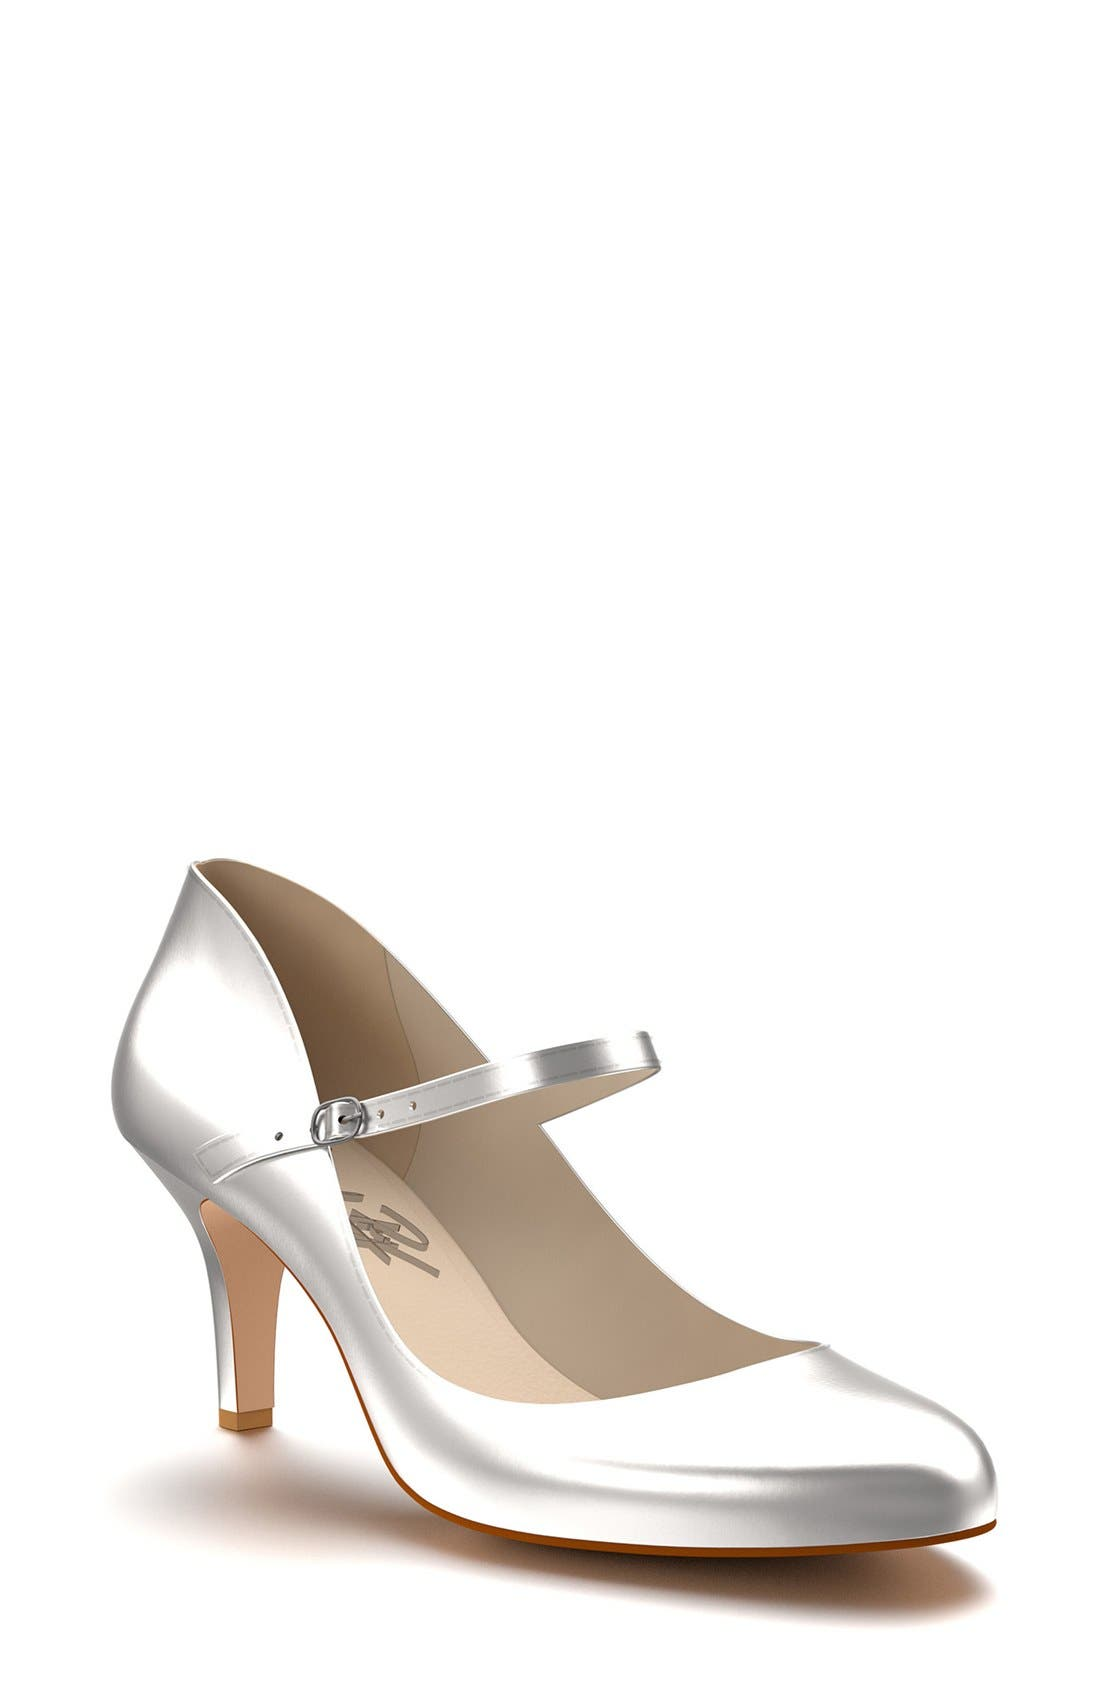 Main Image - Shoes of Prey  Mary Jane Pump (Women)